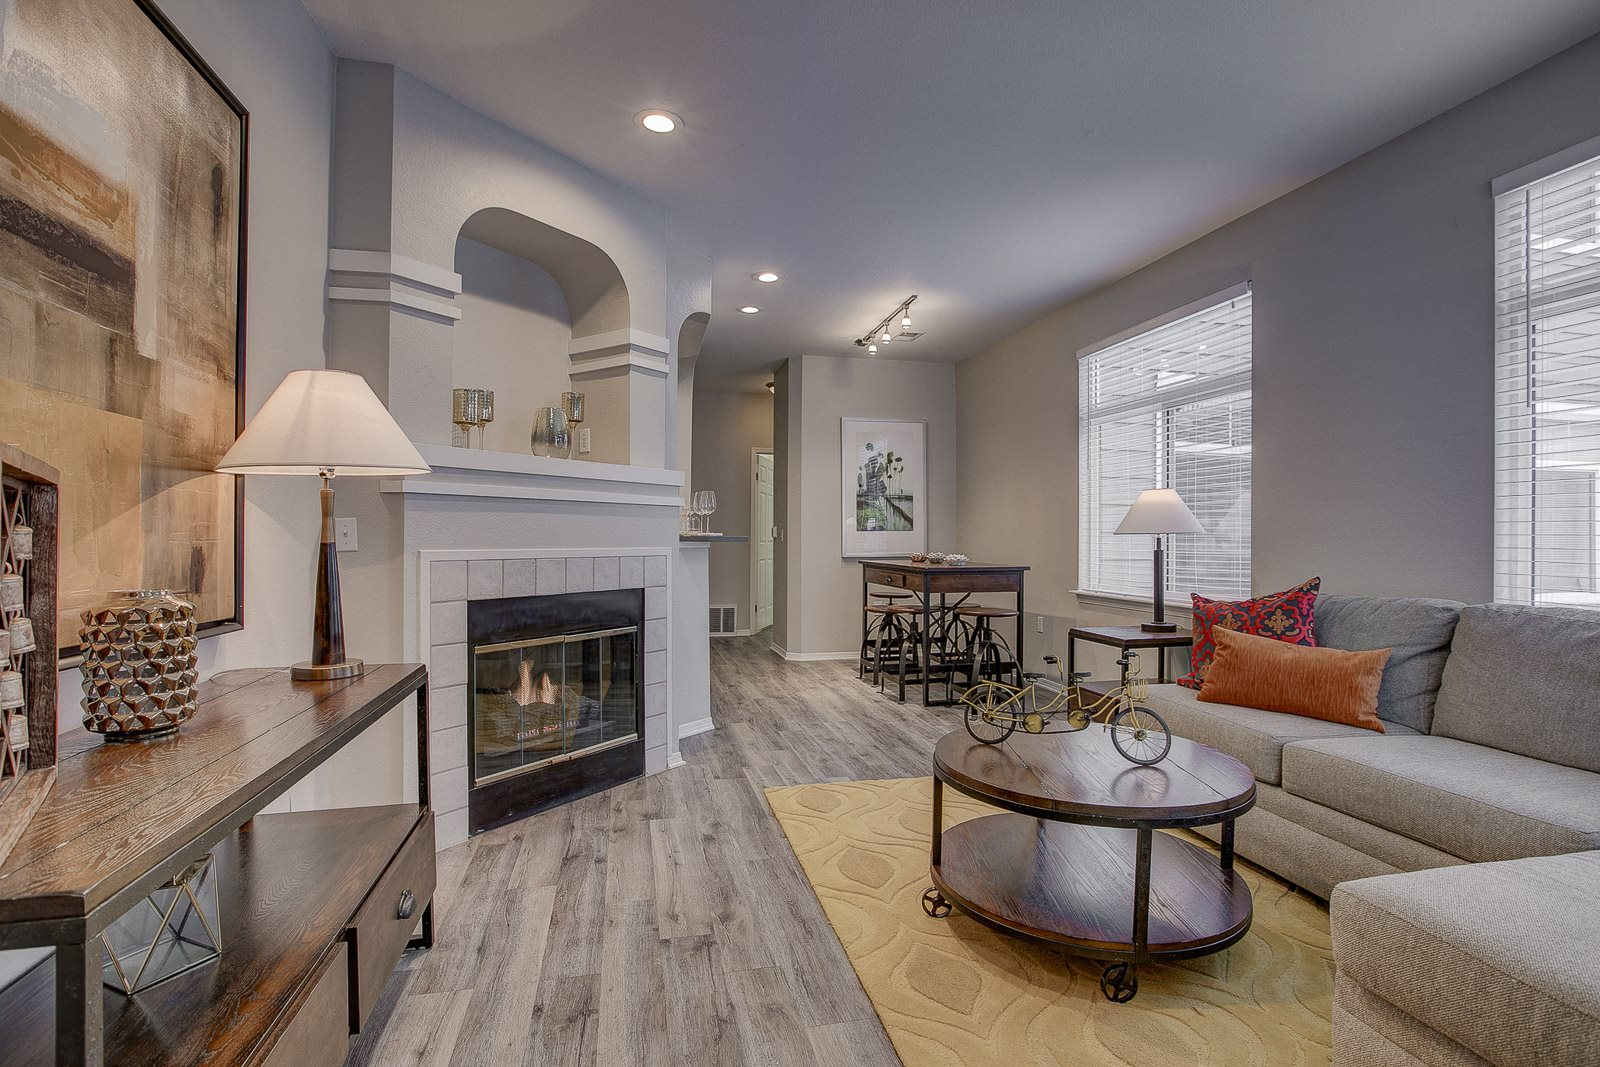 Apartments for Rent in Highlands Ranch-Palomino Park Apartments Living Room With Fireplace And Modern Furnishings